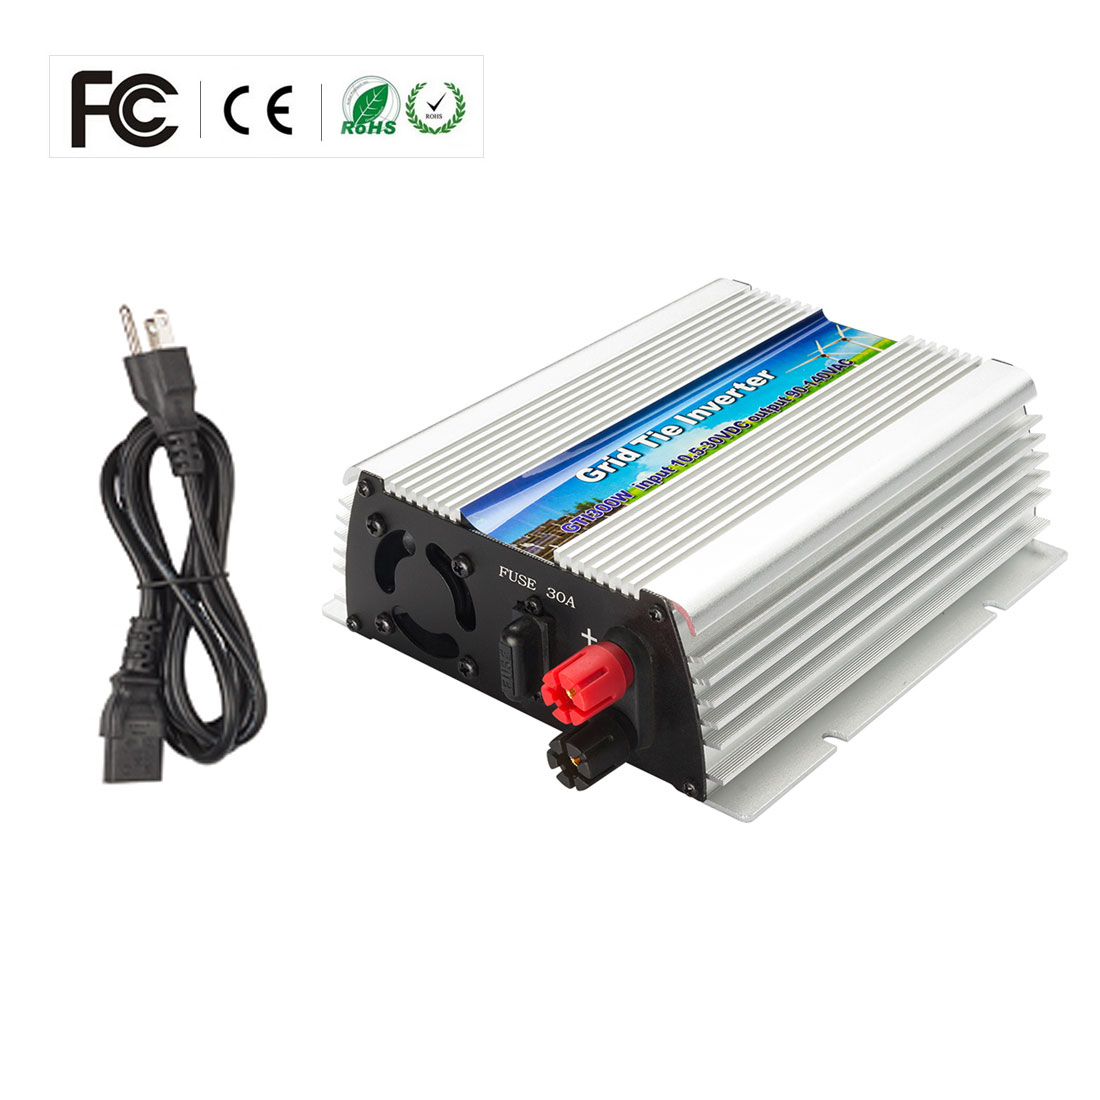 US WV 300W Grid Tie Inverter MPPT For Solar Panel Stackable Pure Sine Wave - image 1 of 7